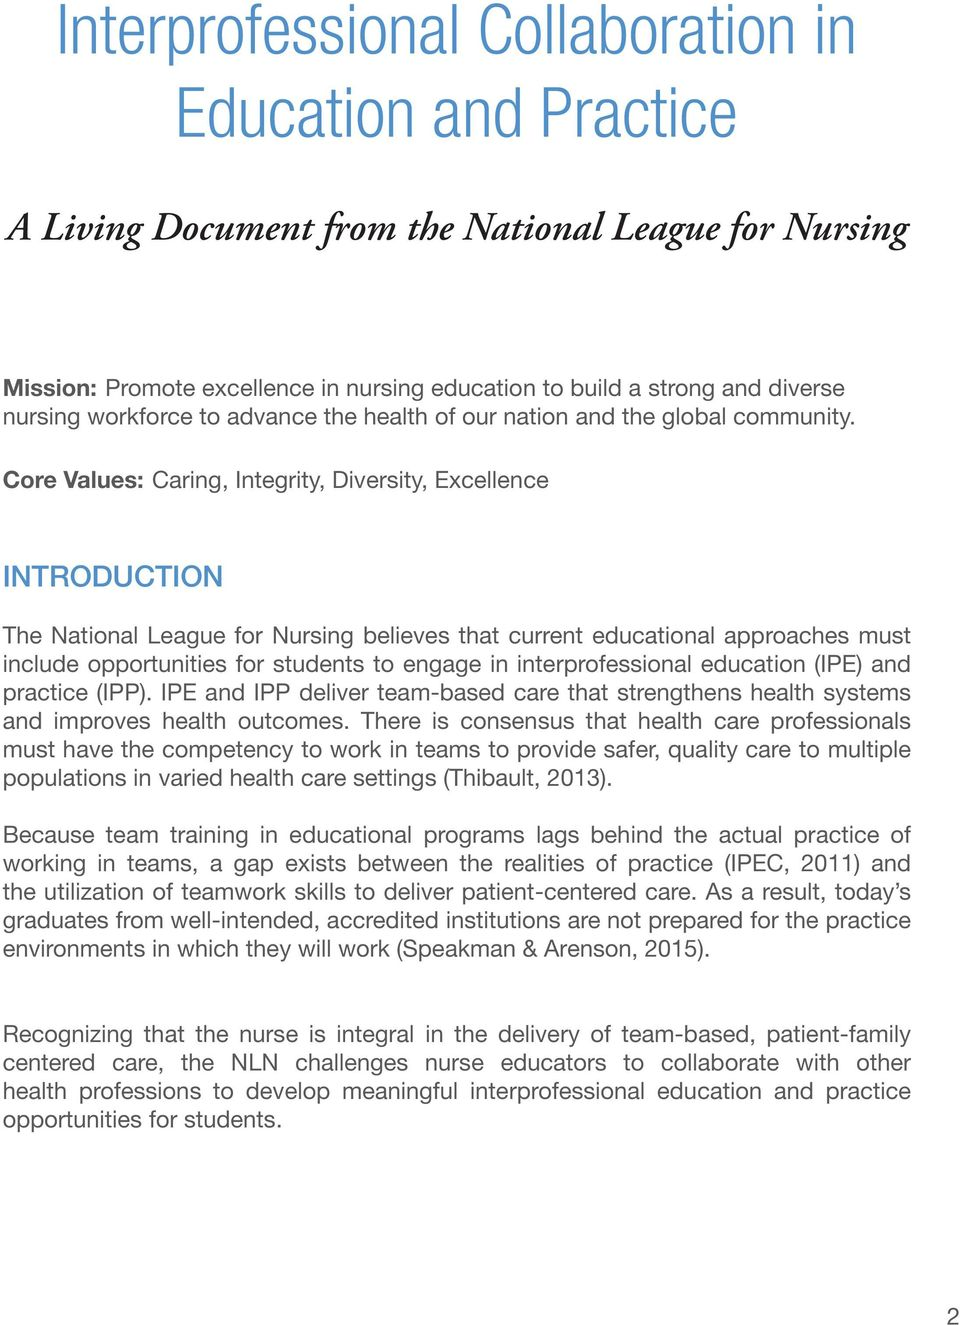 Core Values: Caring, Integrity, Diversity, Excellence INTRODUCTION The National League for Nursing believes that current educational approaches must include opportunities for students to engage in